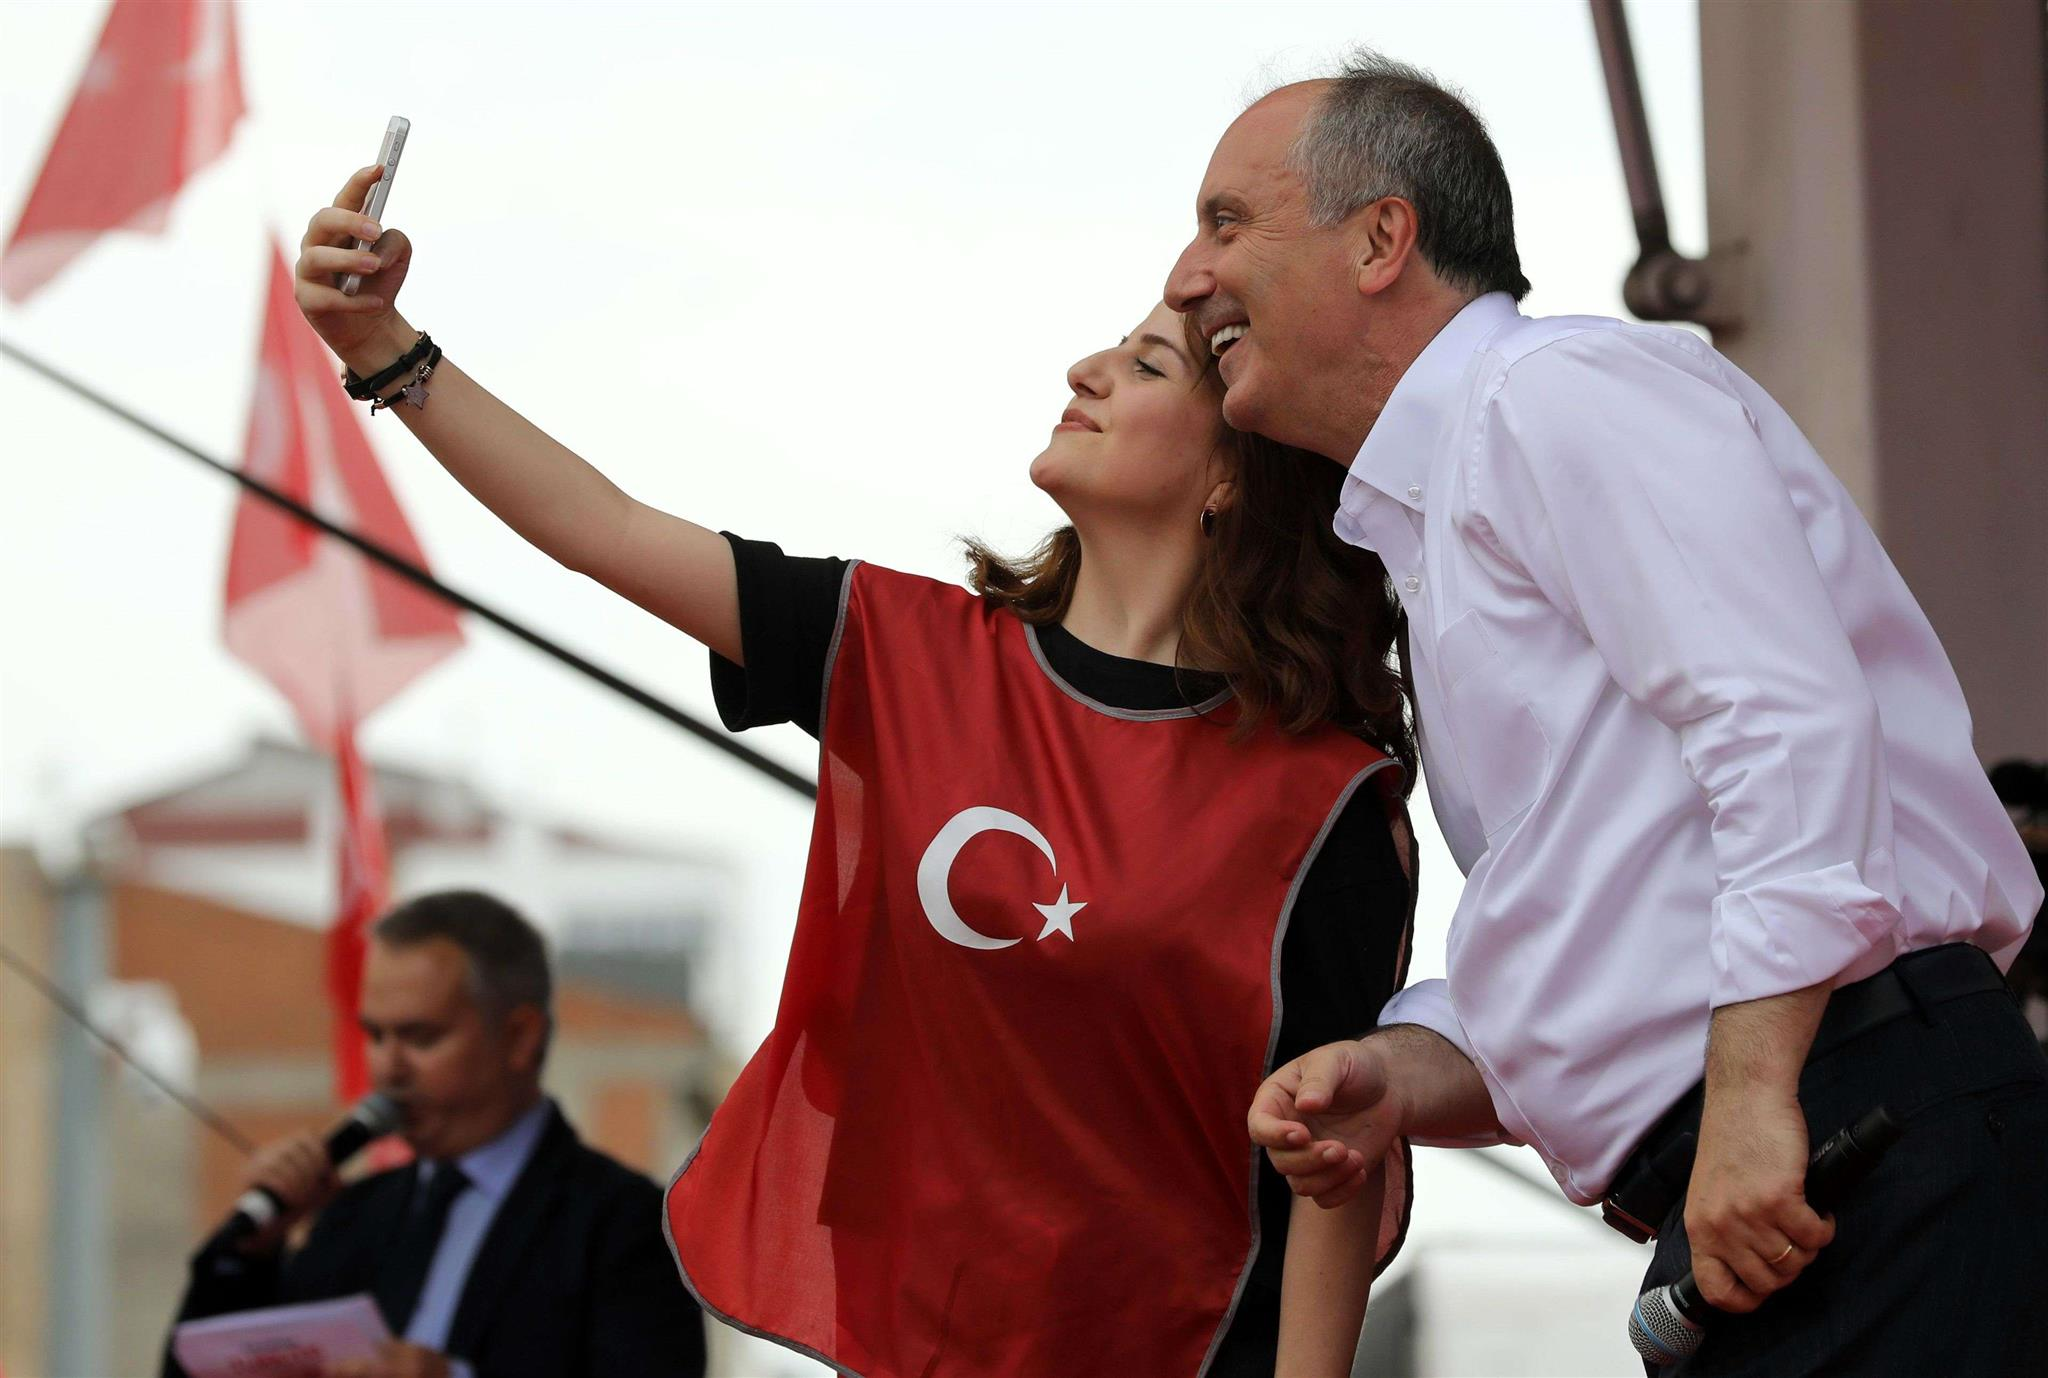 Turkey's CHP Presidential candidate Muharrem Ince (R) poses for a selfie during a campaign rally in Corum, on May 17. (AFP)